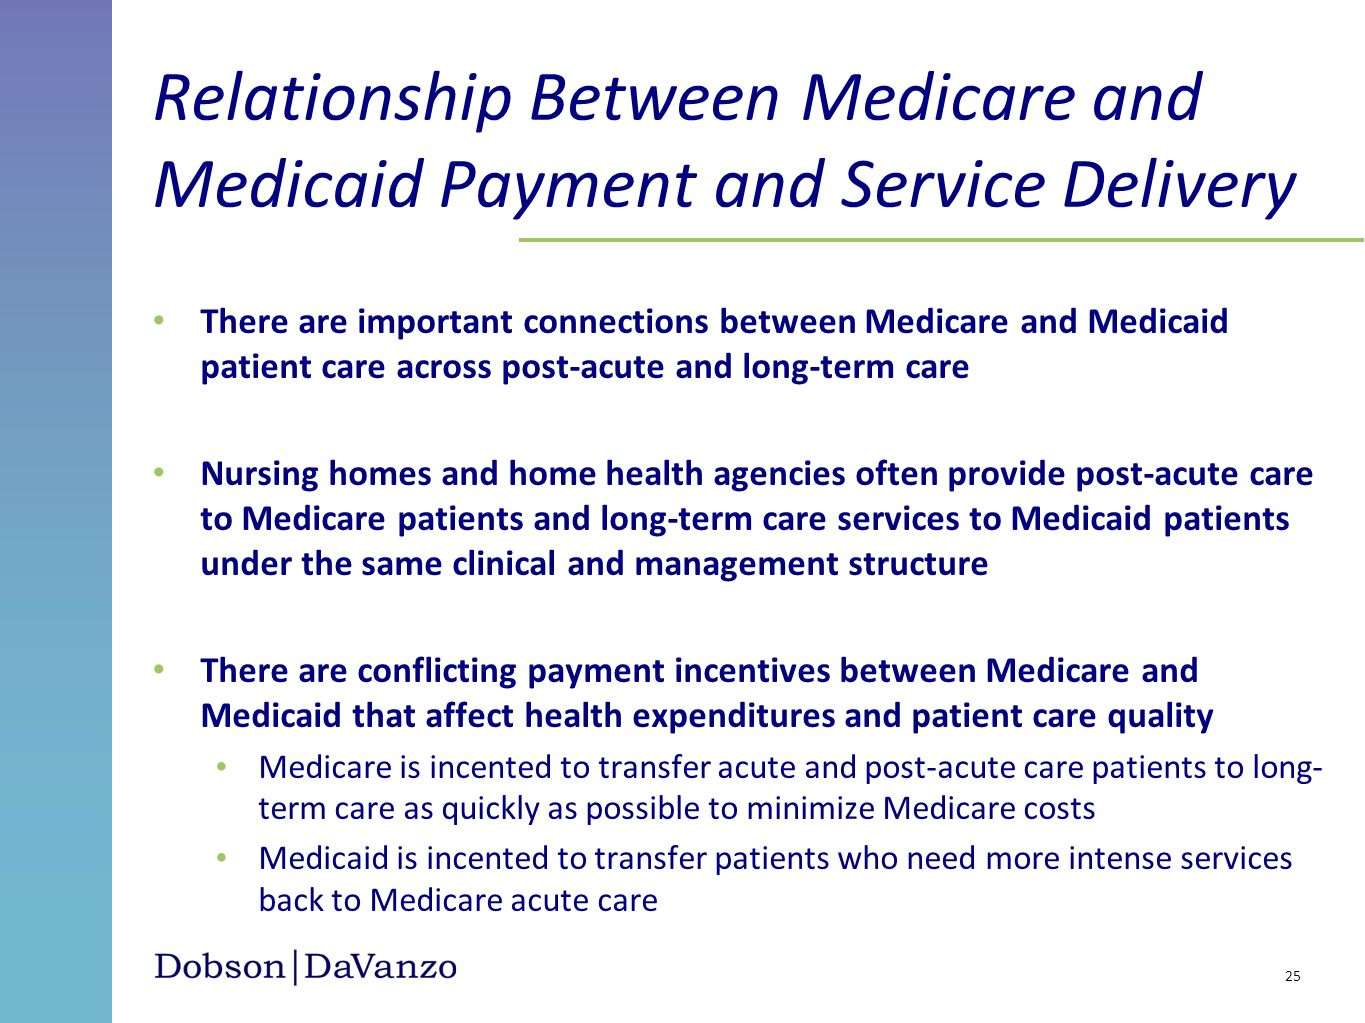 There are important connections between Medicare and Medicaid patient care across post-acute and long-term care Nursing homes and home health agencies